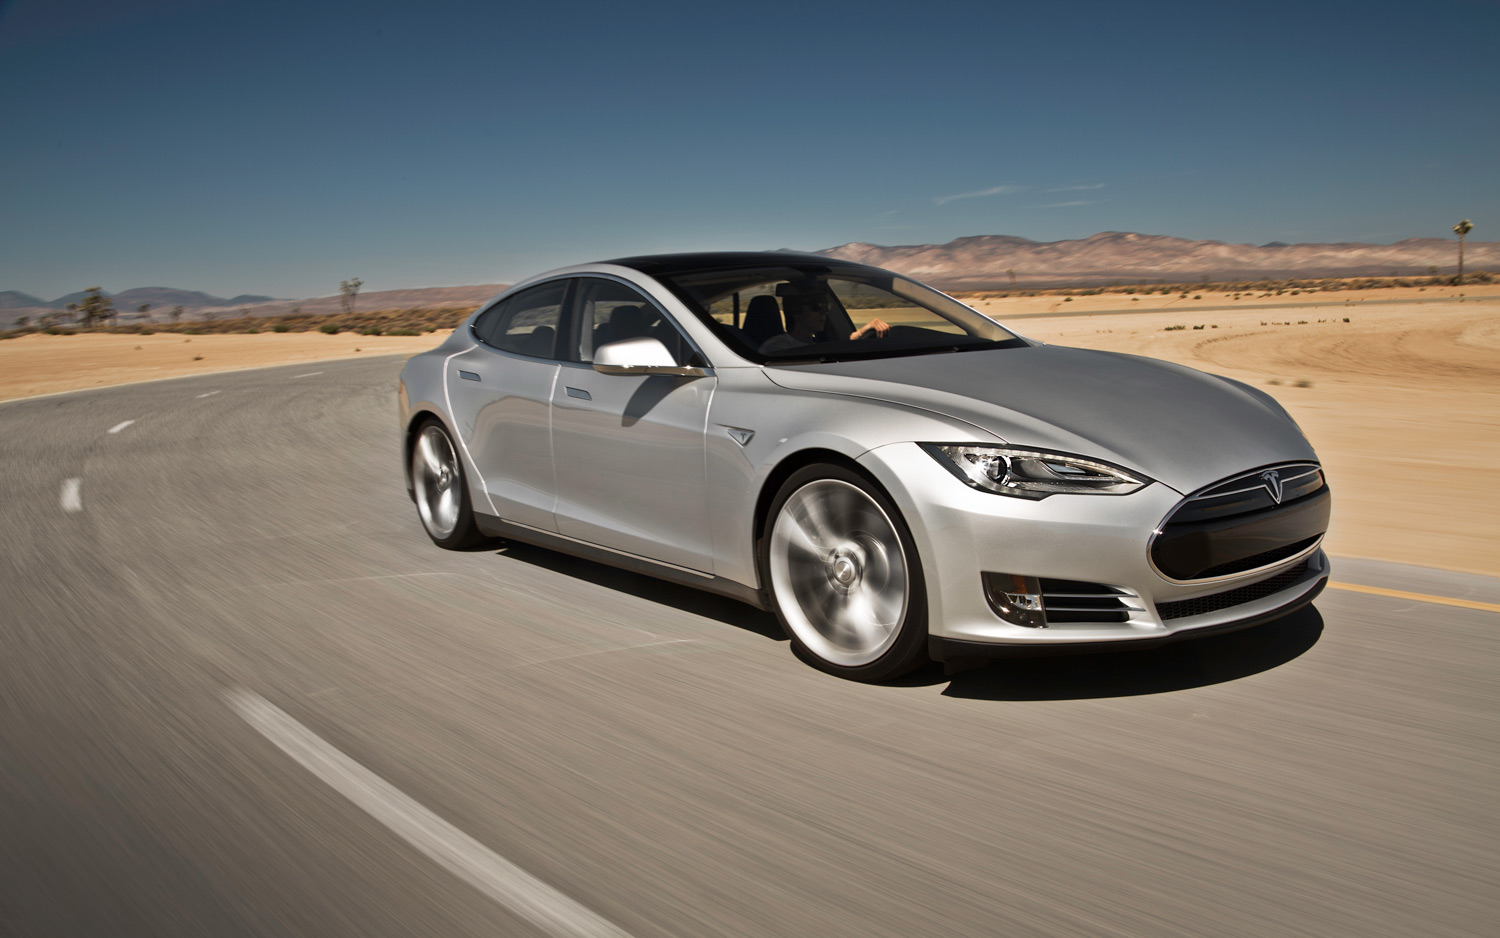 Saleen-Tuned Tesla Model S in the Works